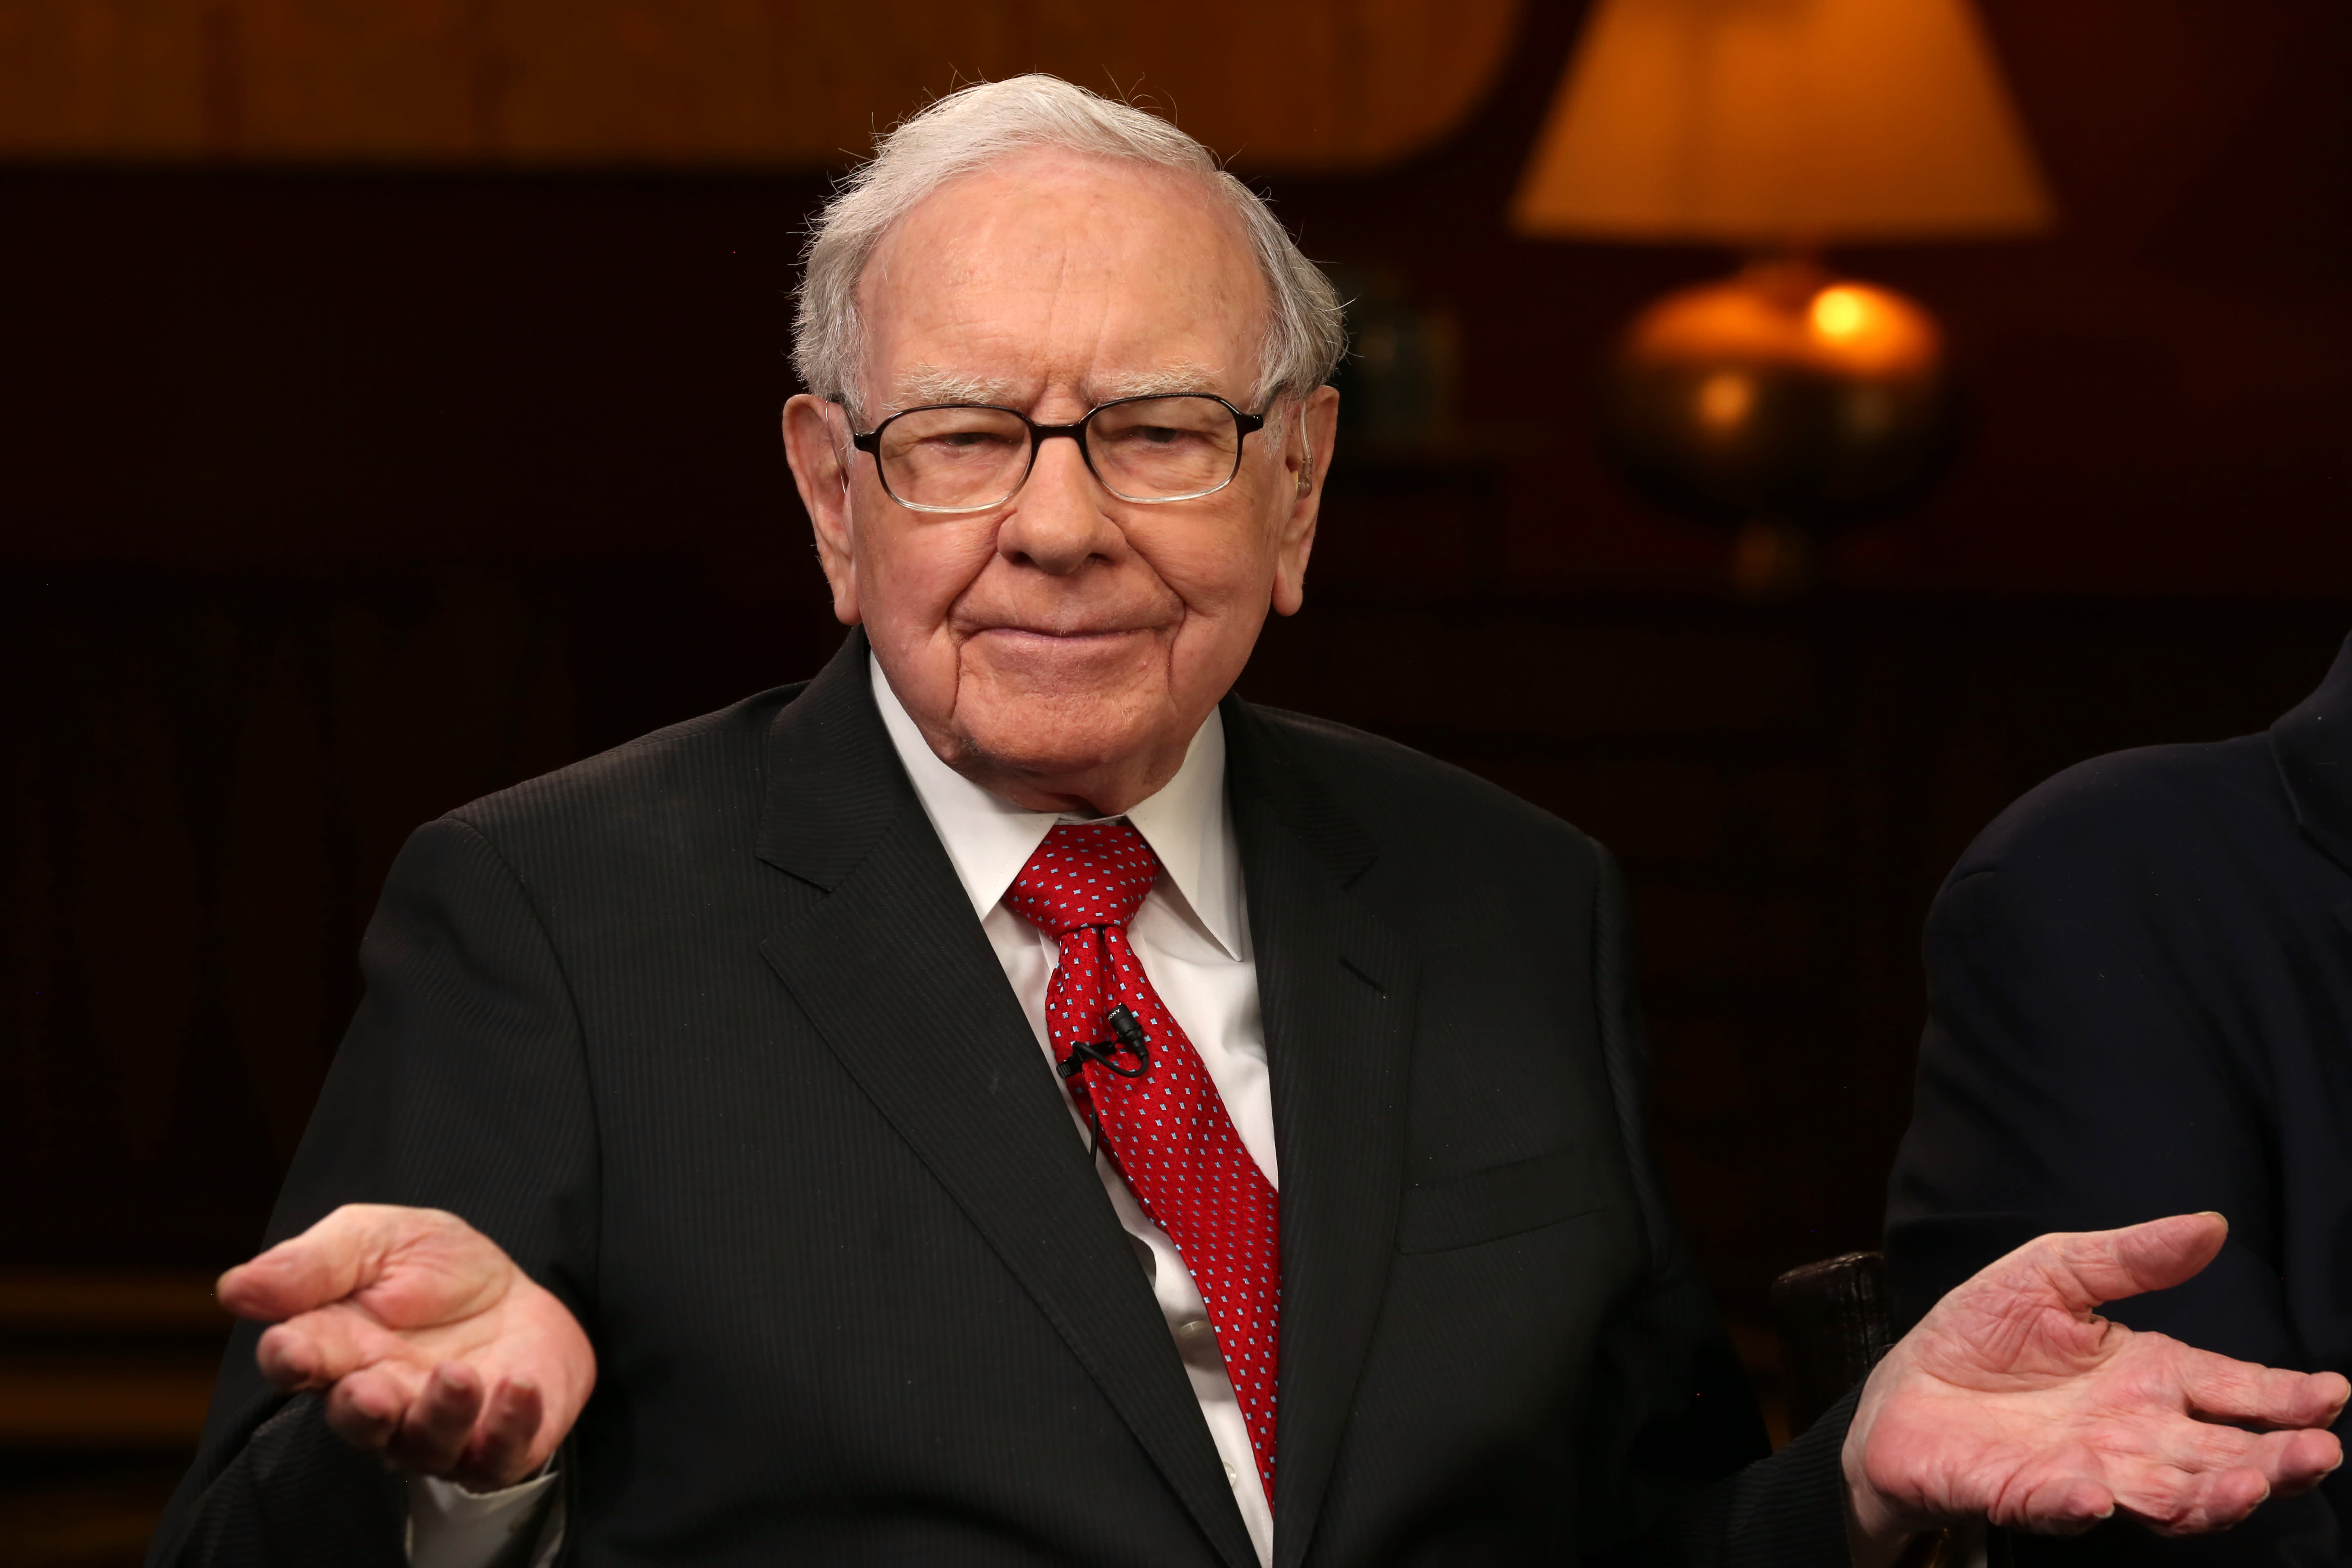 Warren Buffett says stocks look like 'intelligent investments' compared to bonds today